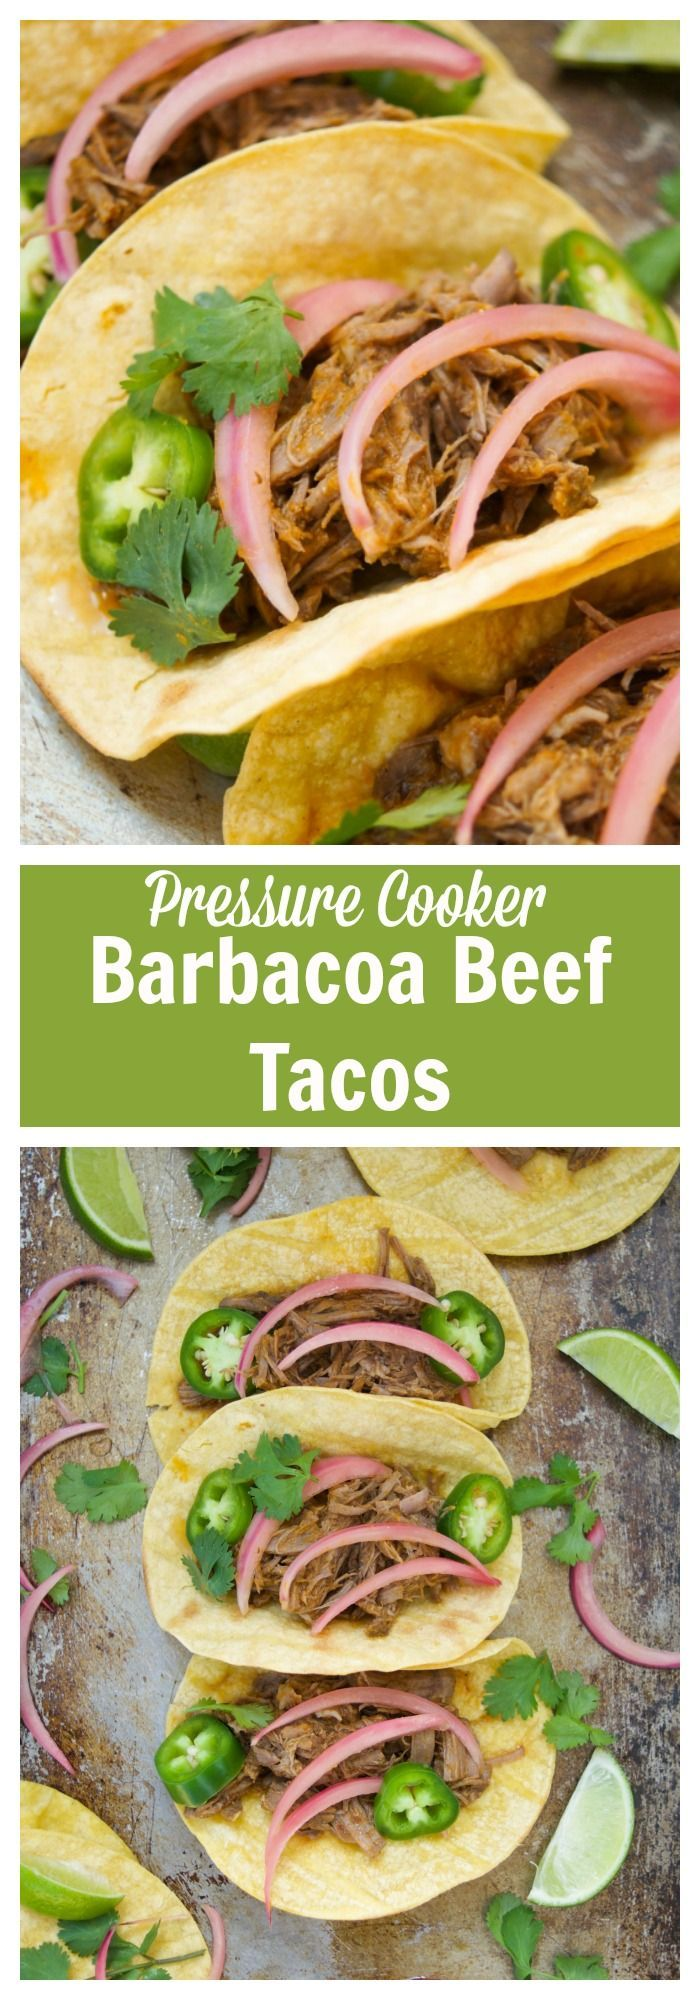 This scrumptious beef barbacoa tacos recipe is made quickly in the pressure cooker and served with homemade pickled onions. Perfect for dinner and parties. More delicious Mexican recipes at livingsweetmoments.com  via @Livingsmoments #ad #lockinbrilliance